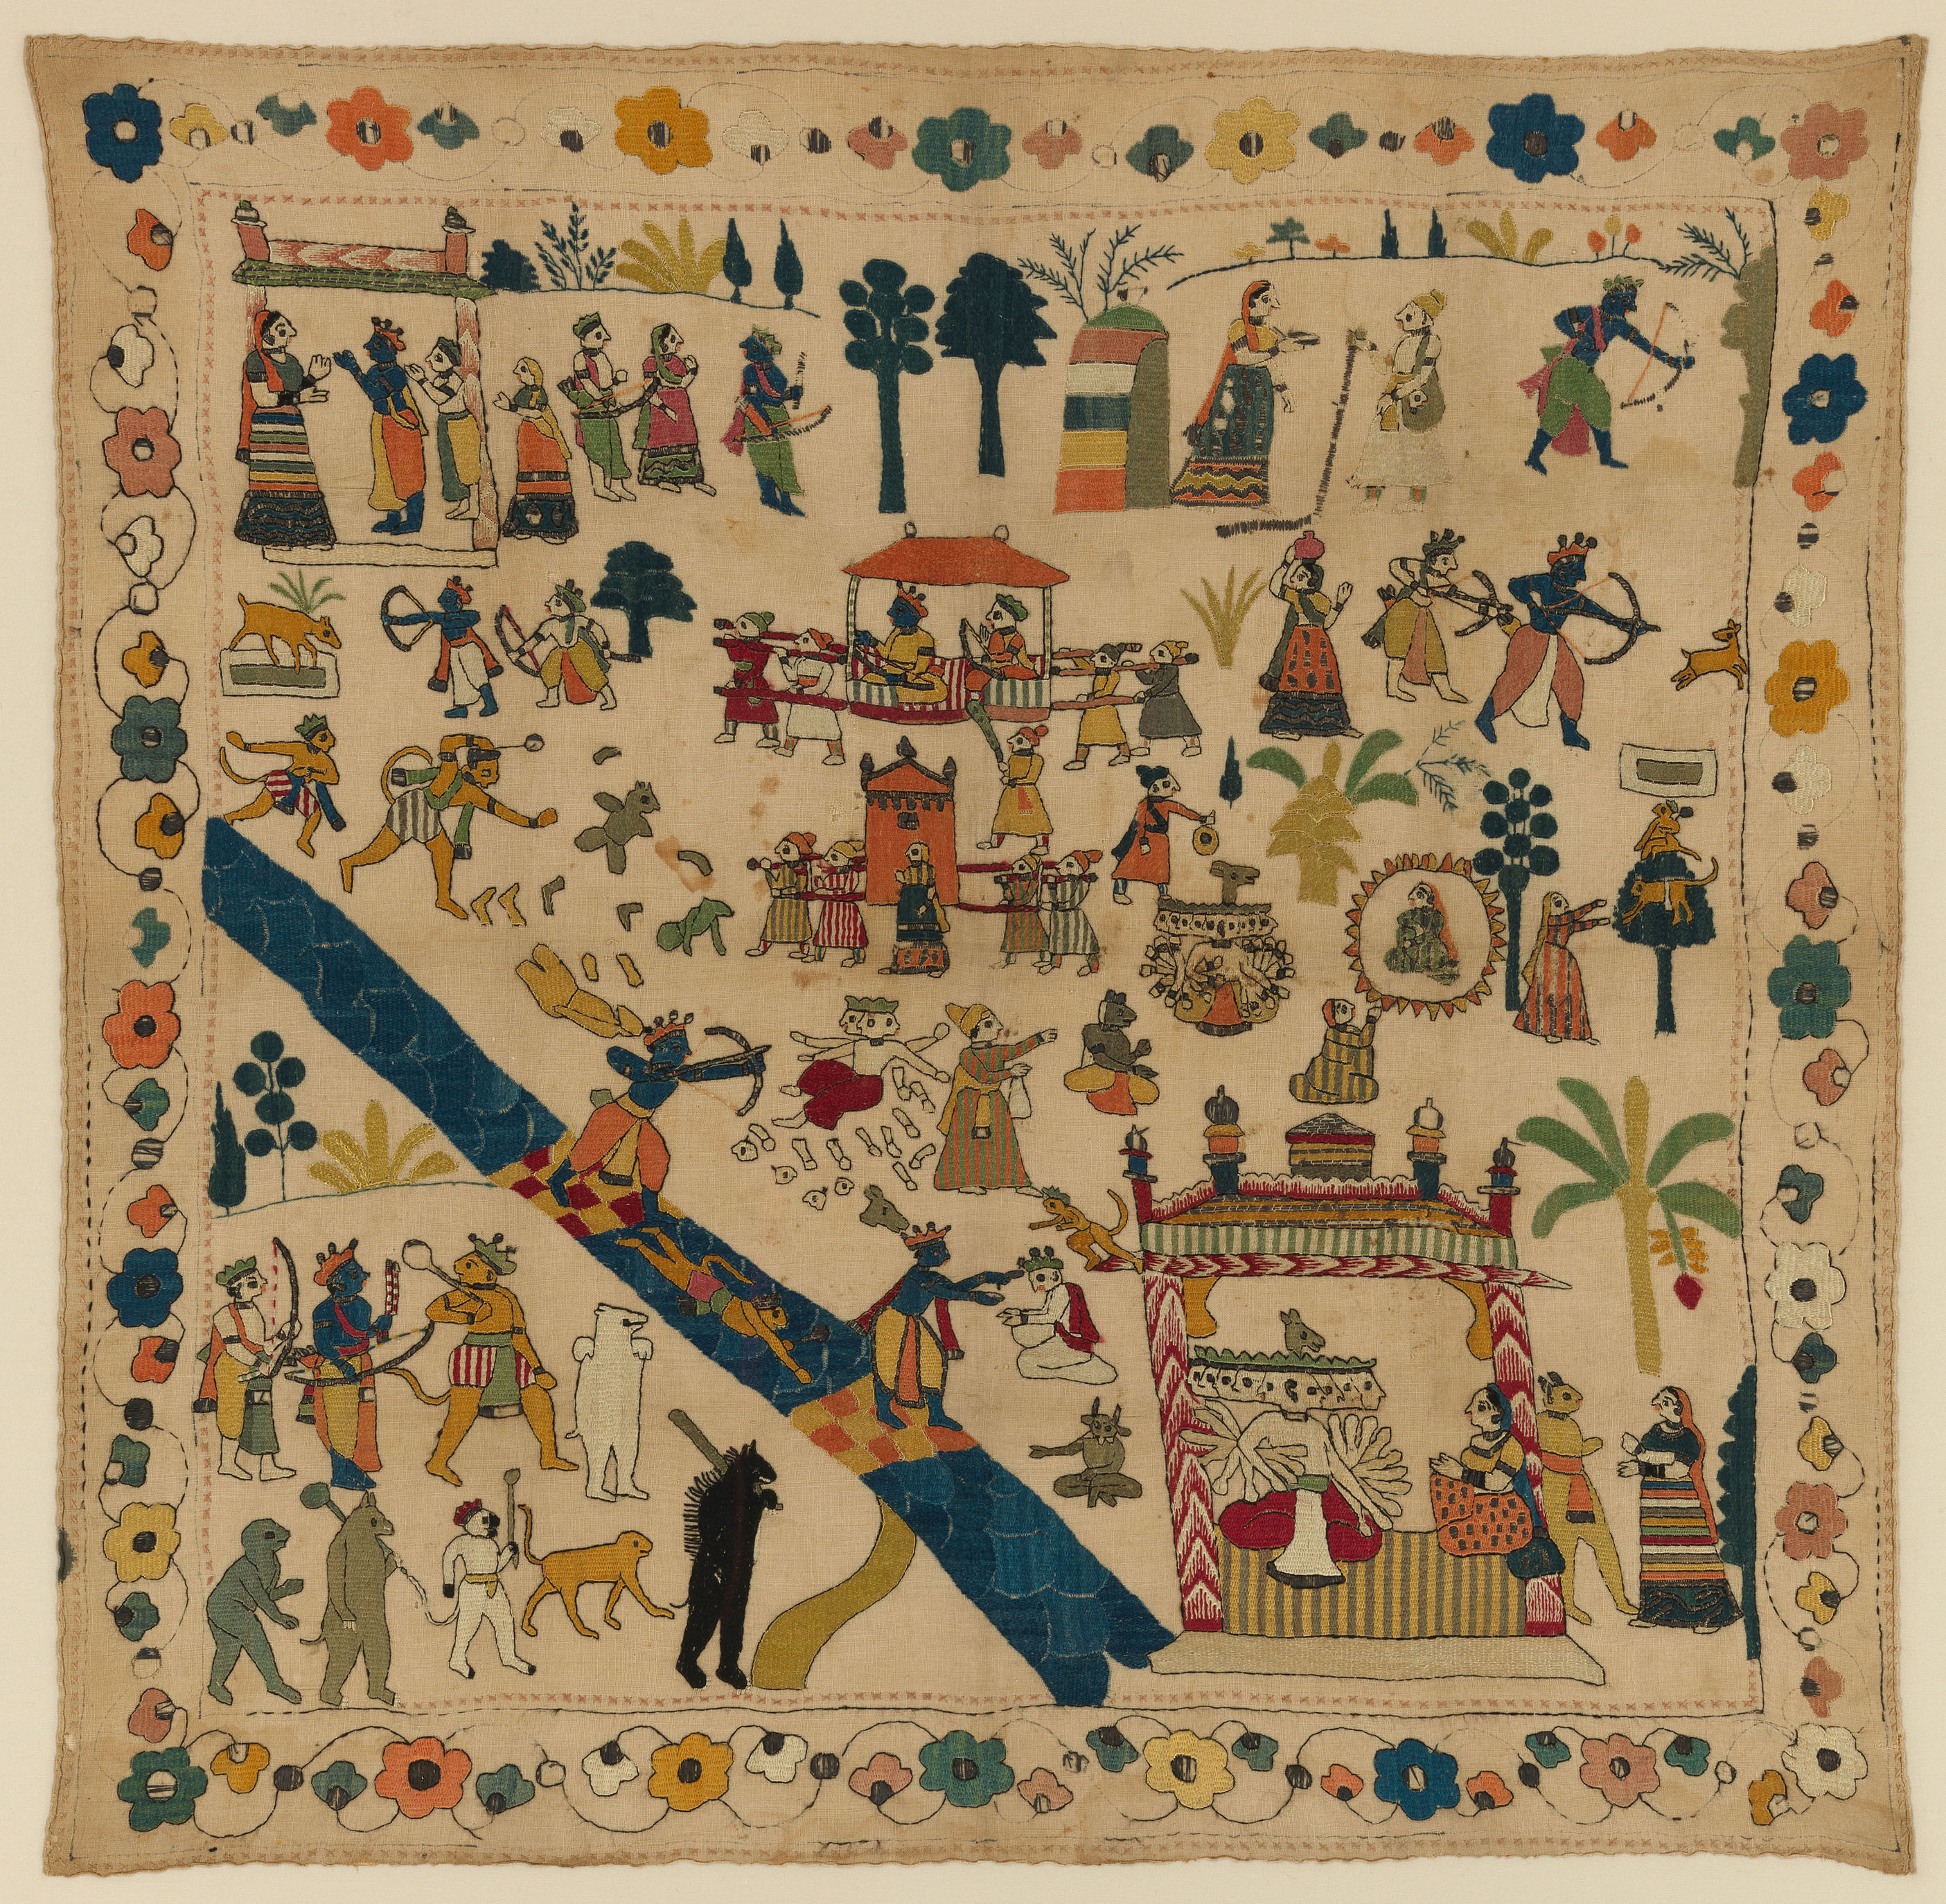 An 18th century cotton scarf from the Chamba region with scenes from the Ramayana embroidered on it with silk, tinsel and metal.